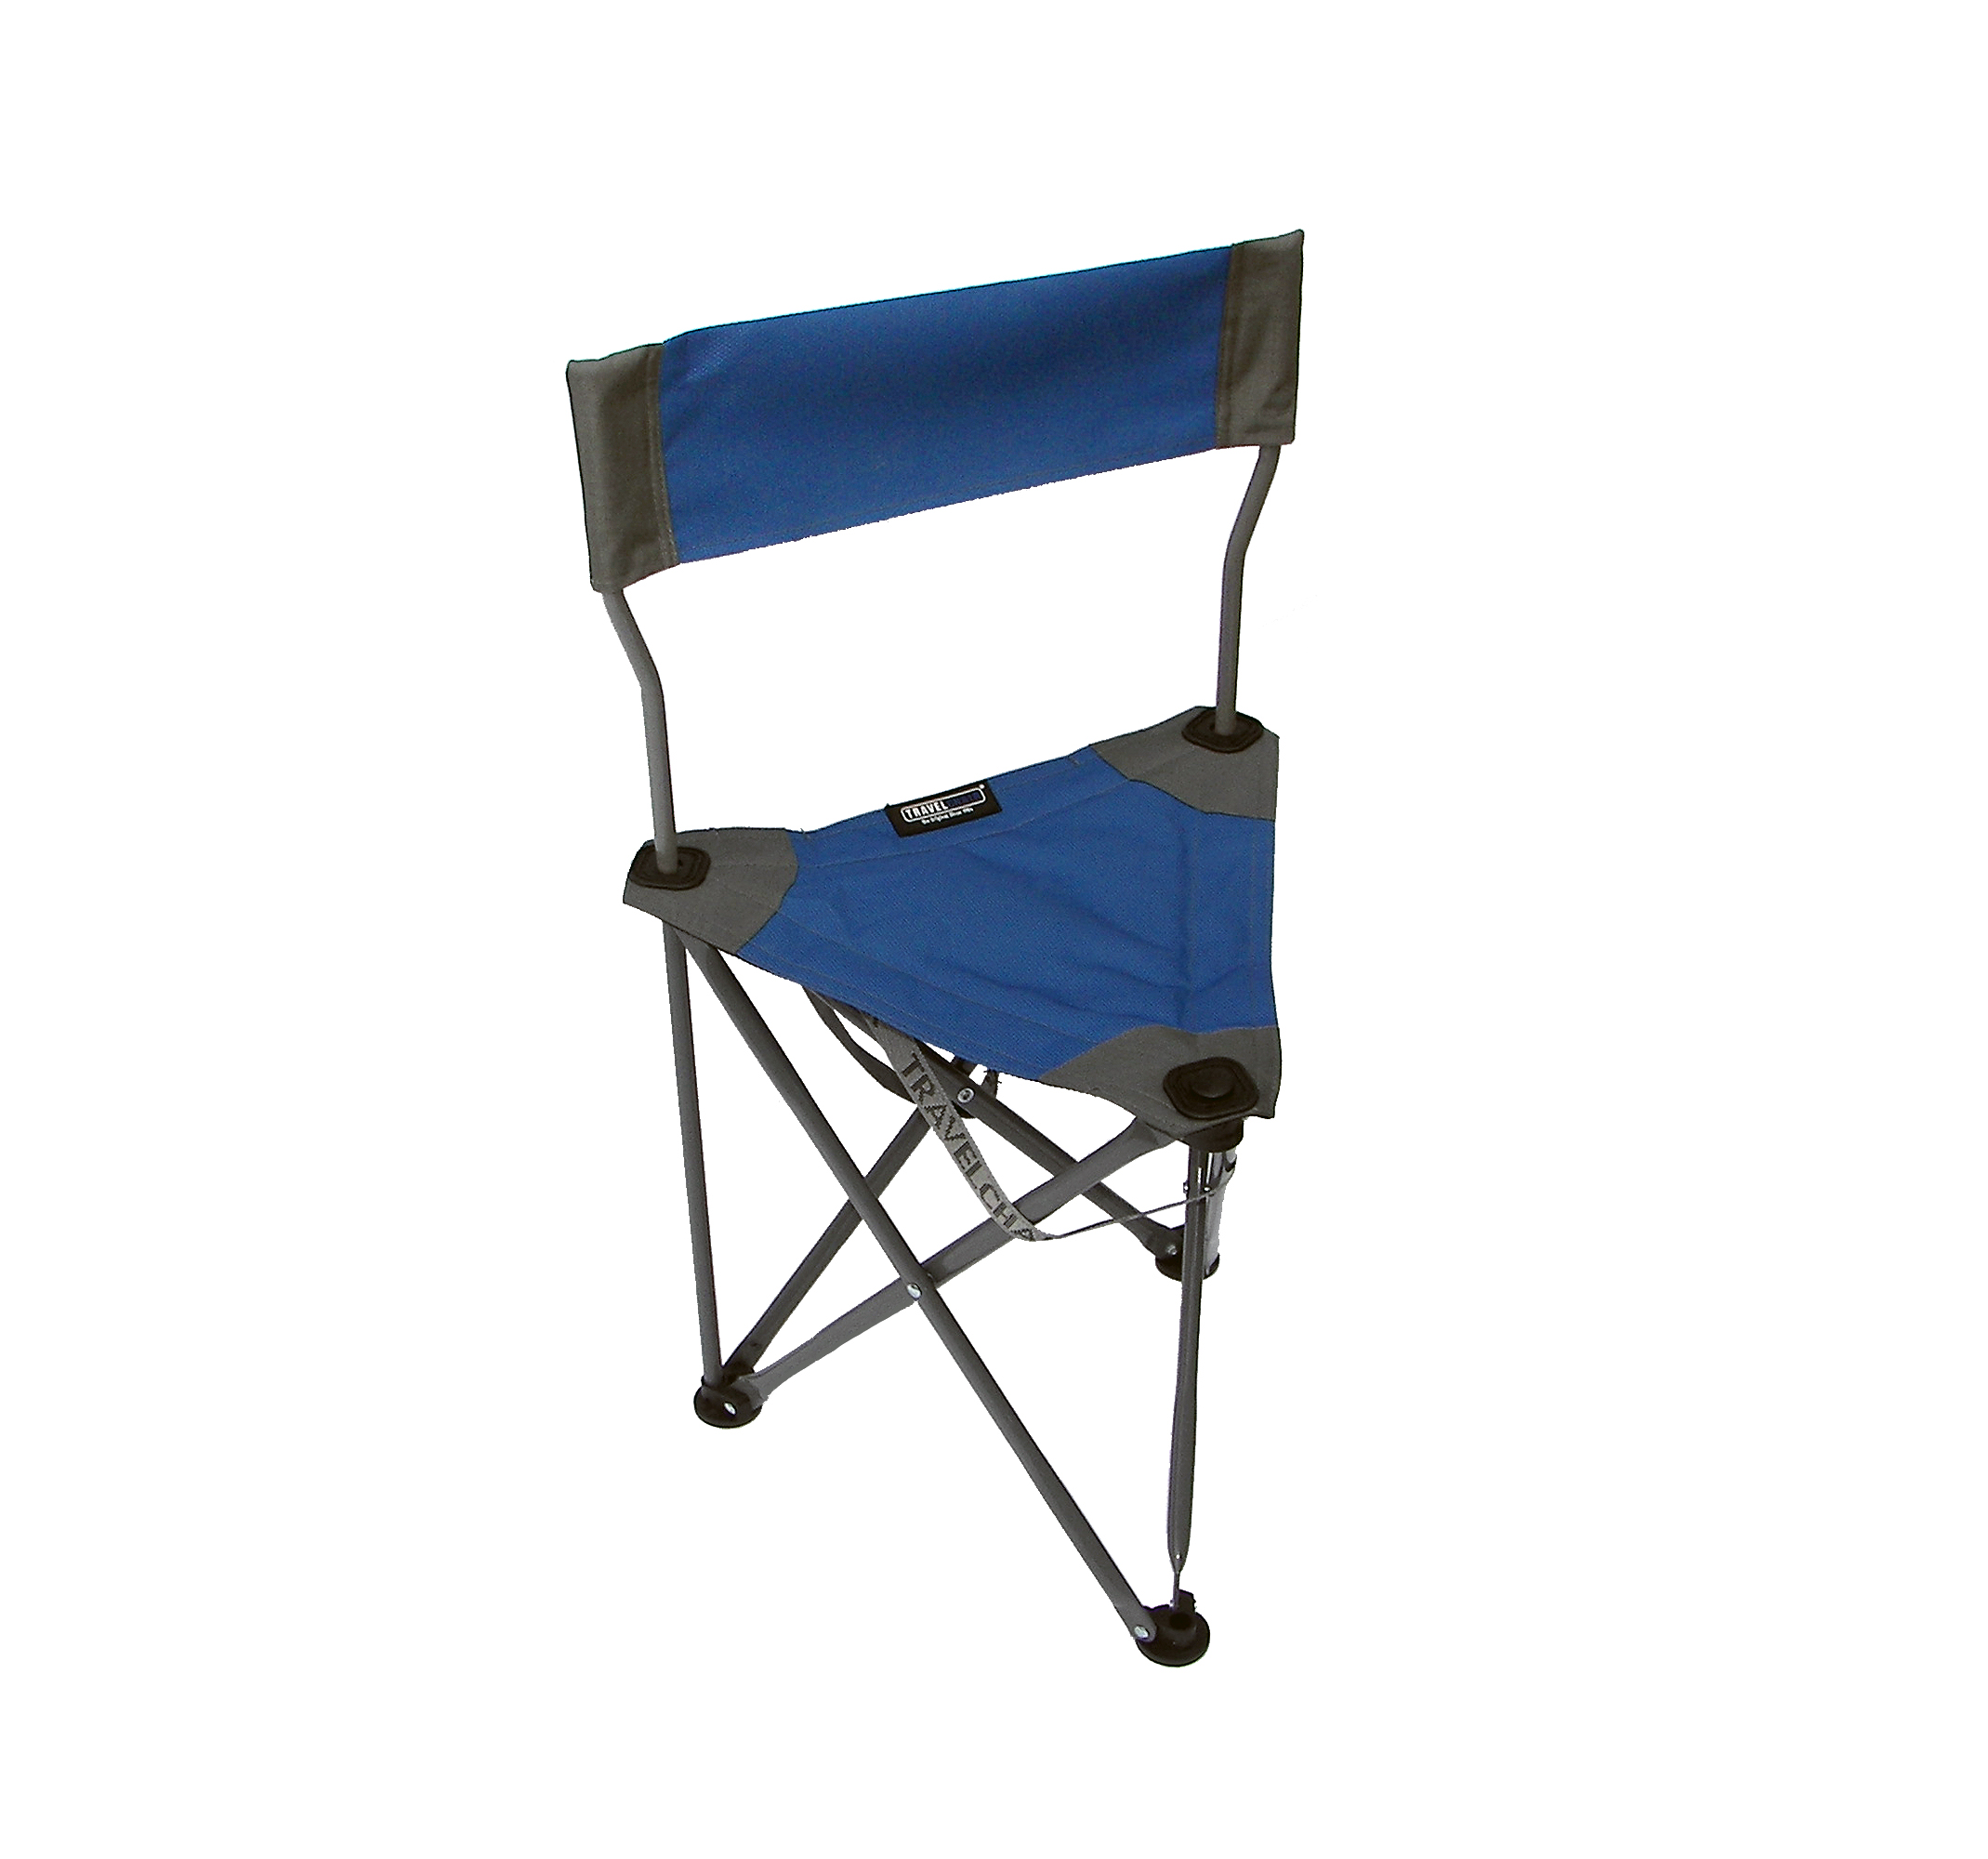 folding chair travel camping chairs for fat people ultimate slacker 2 blue